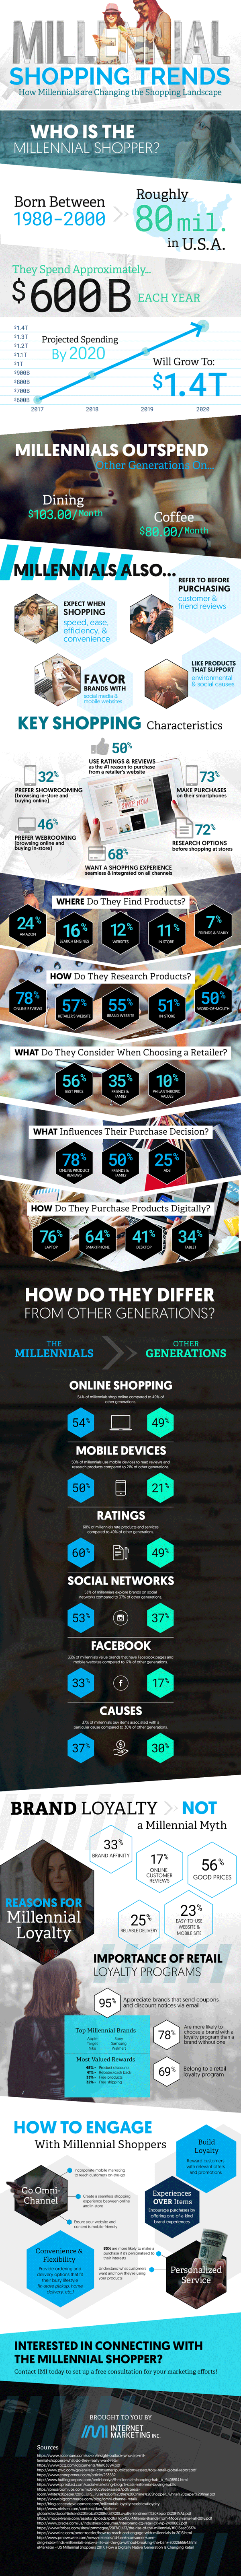 How to Position a Product or Service with Millennials